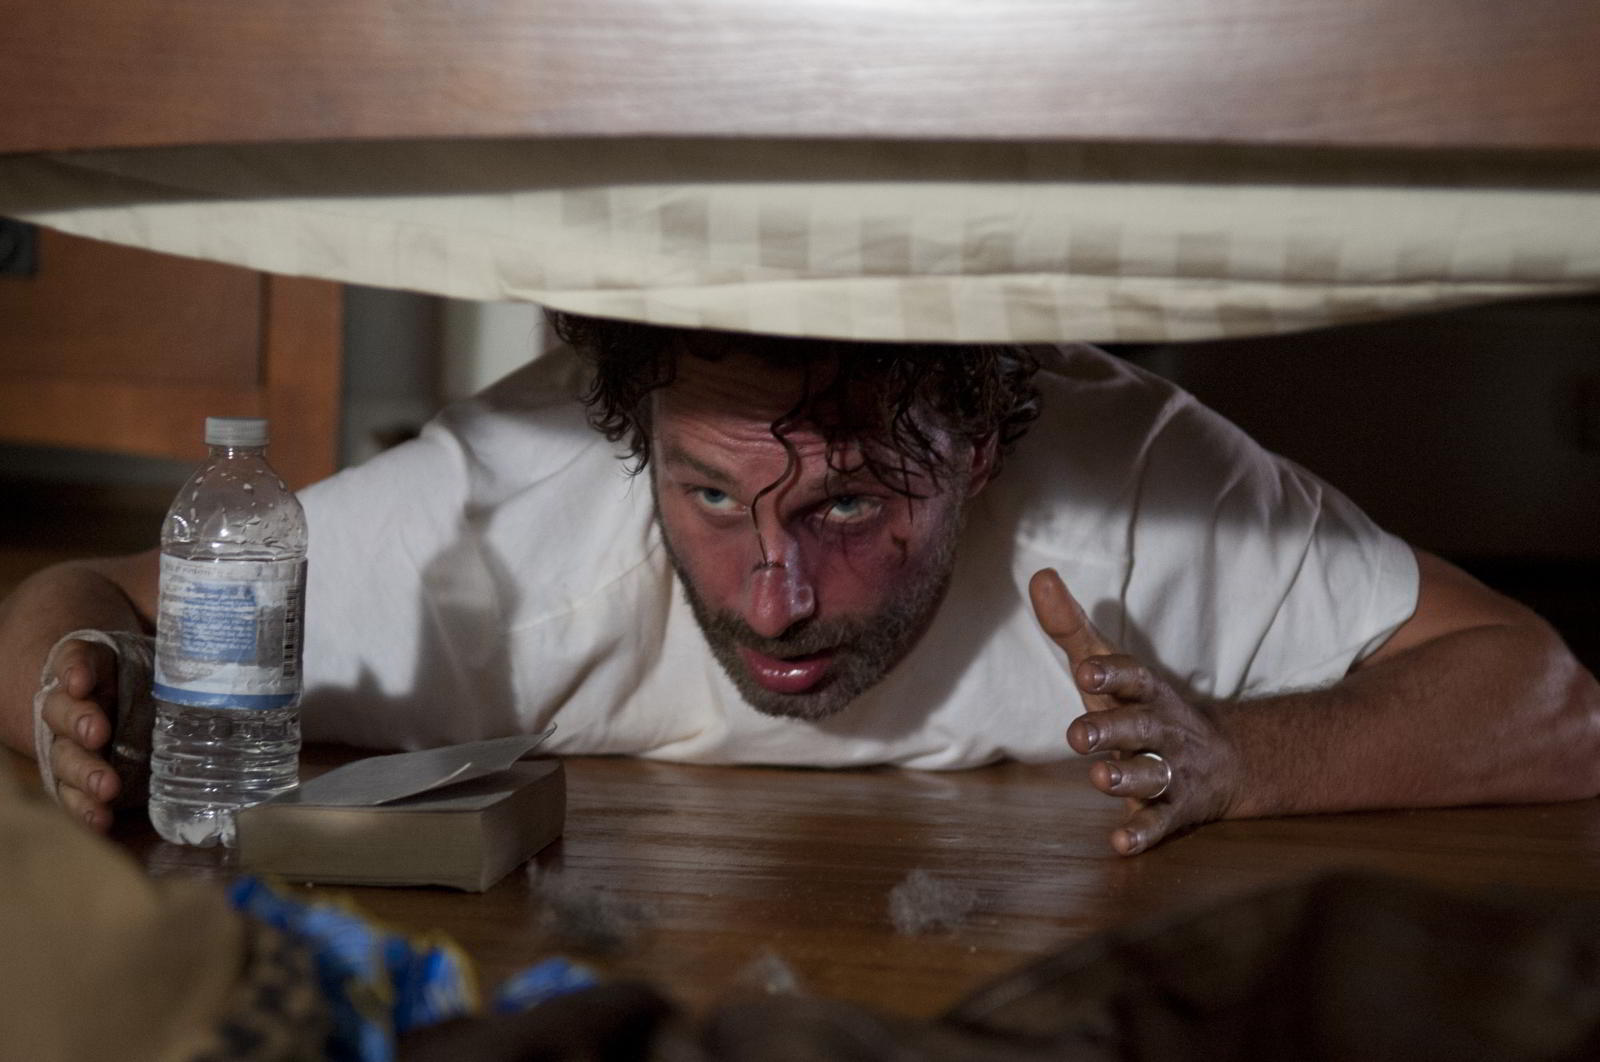 walking-dead-s4-ep11-claimed-rick-under-bed